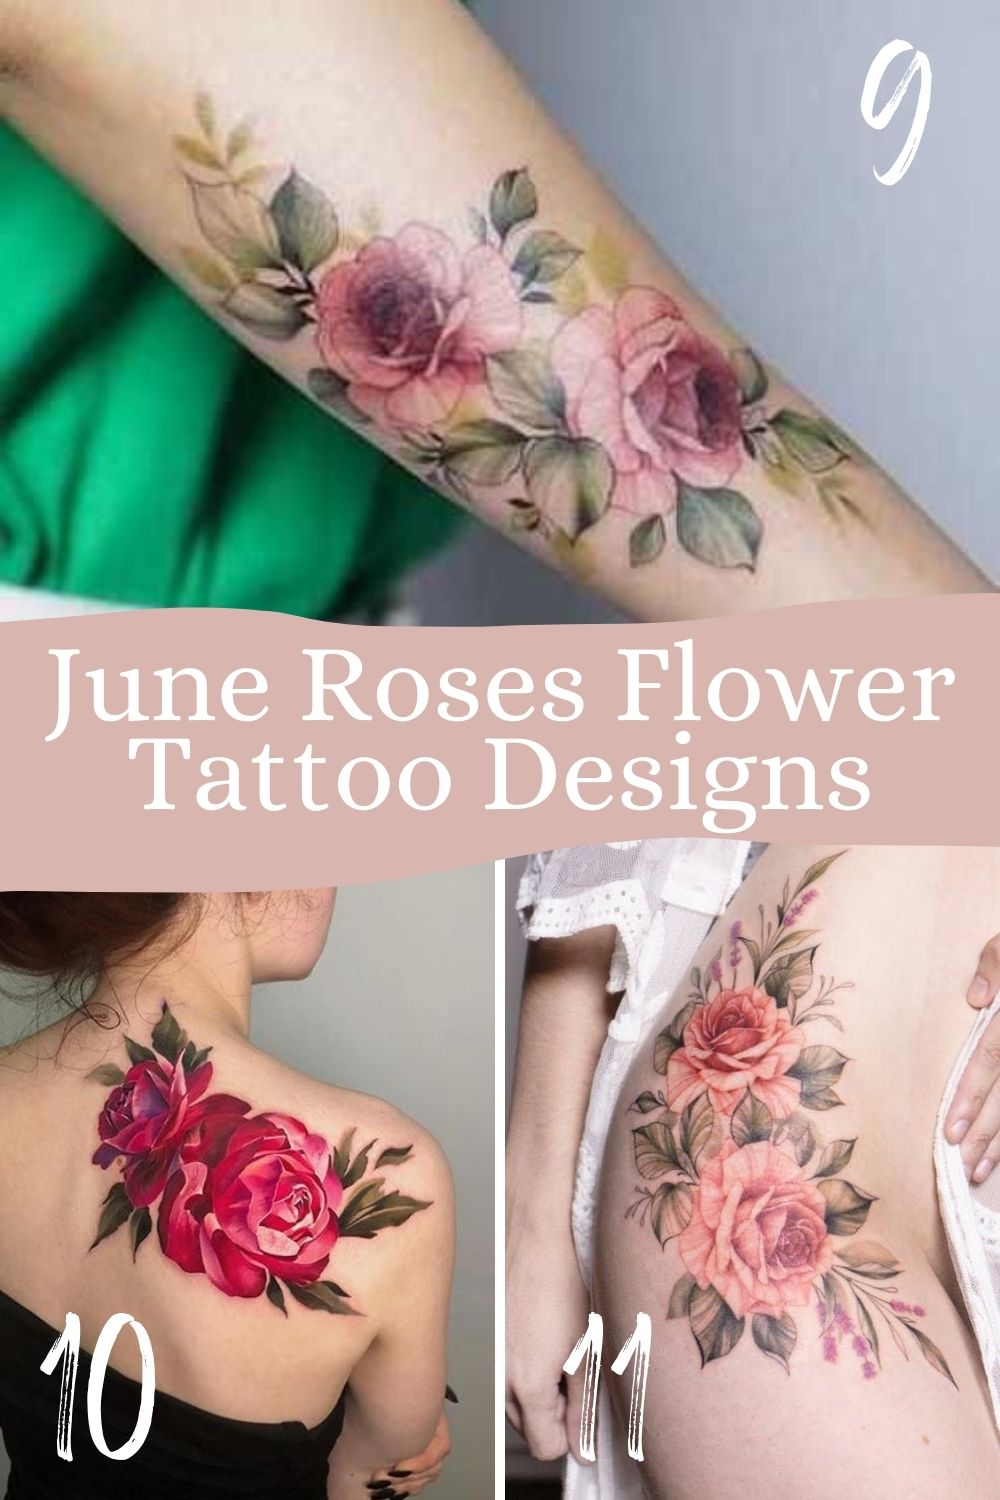 June Roses Flower Tattoo Designs With Leaves